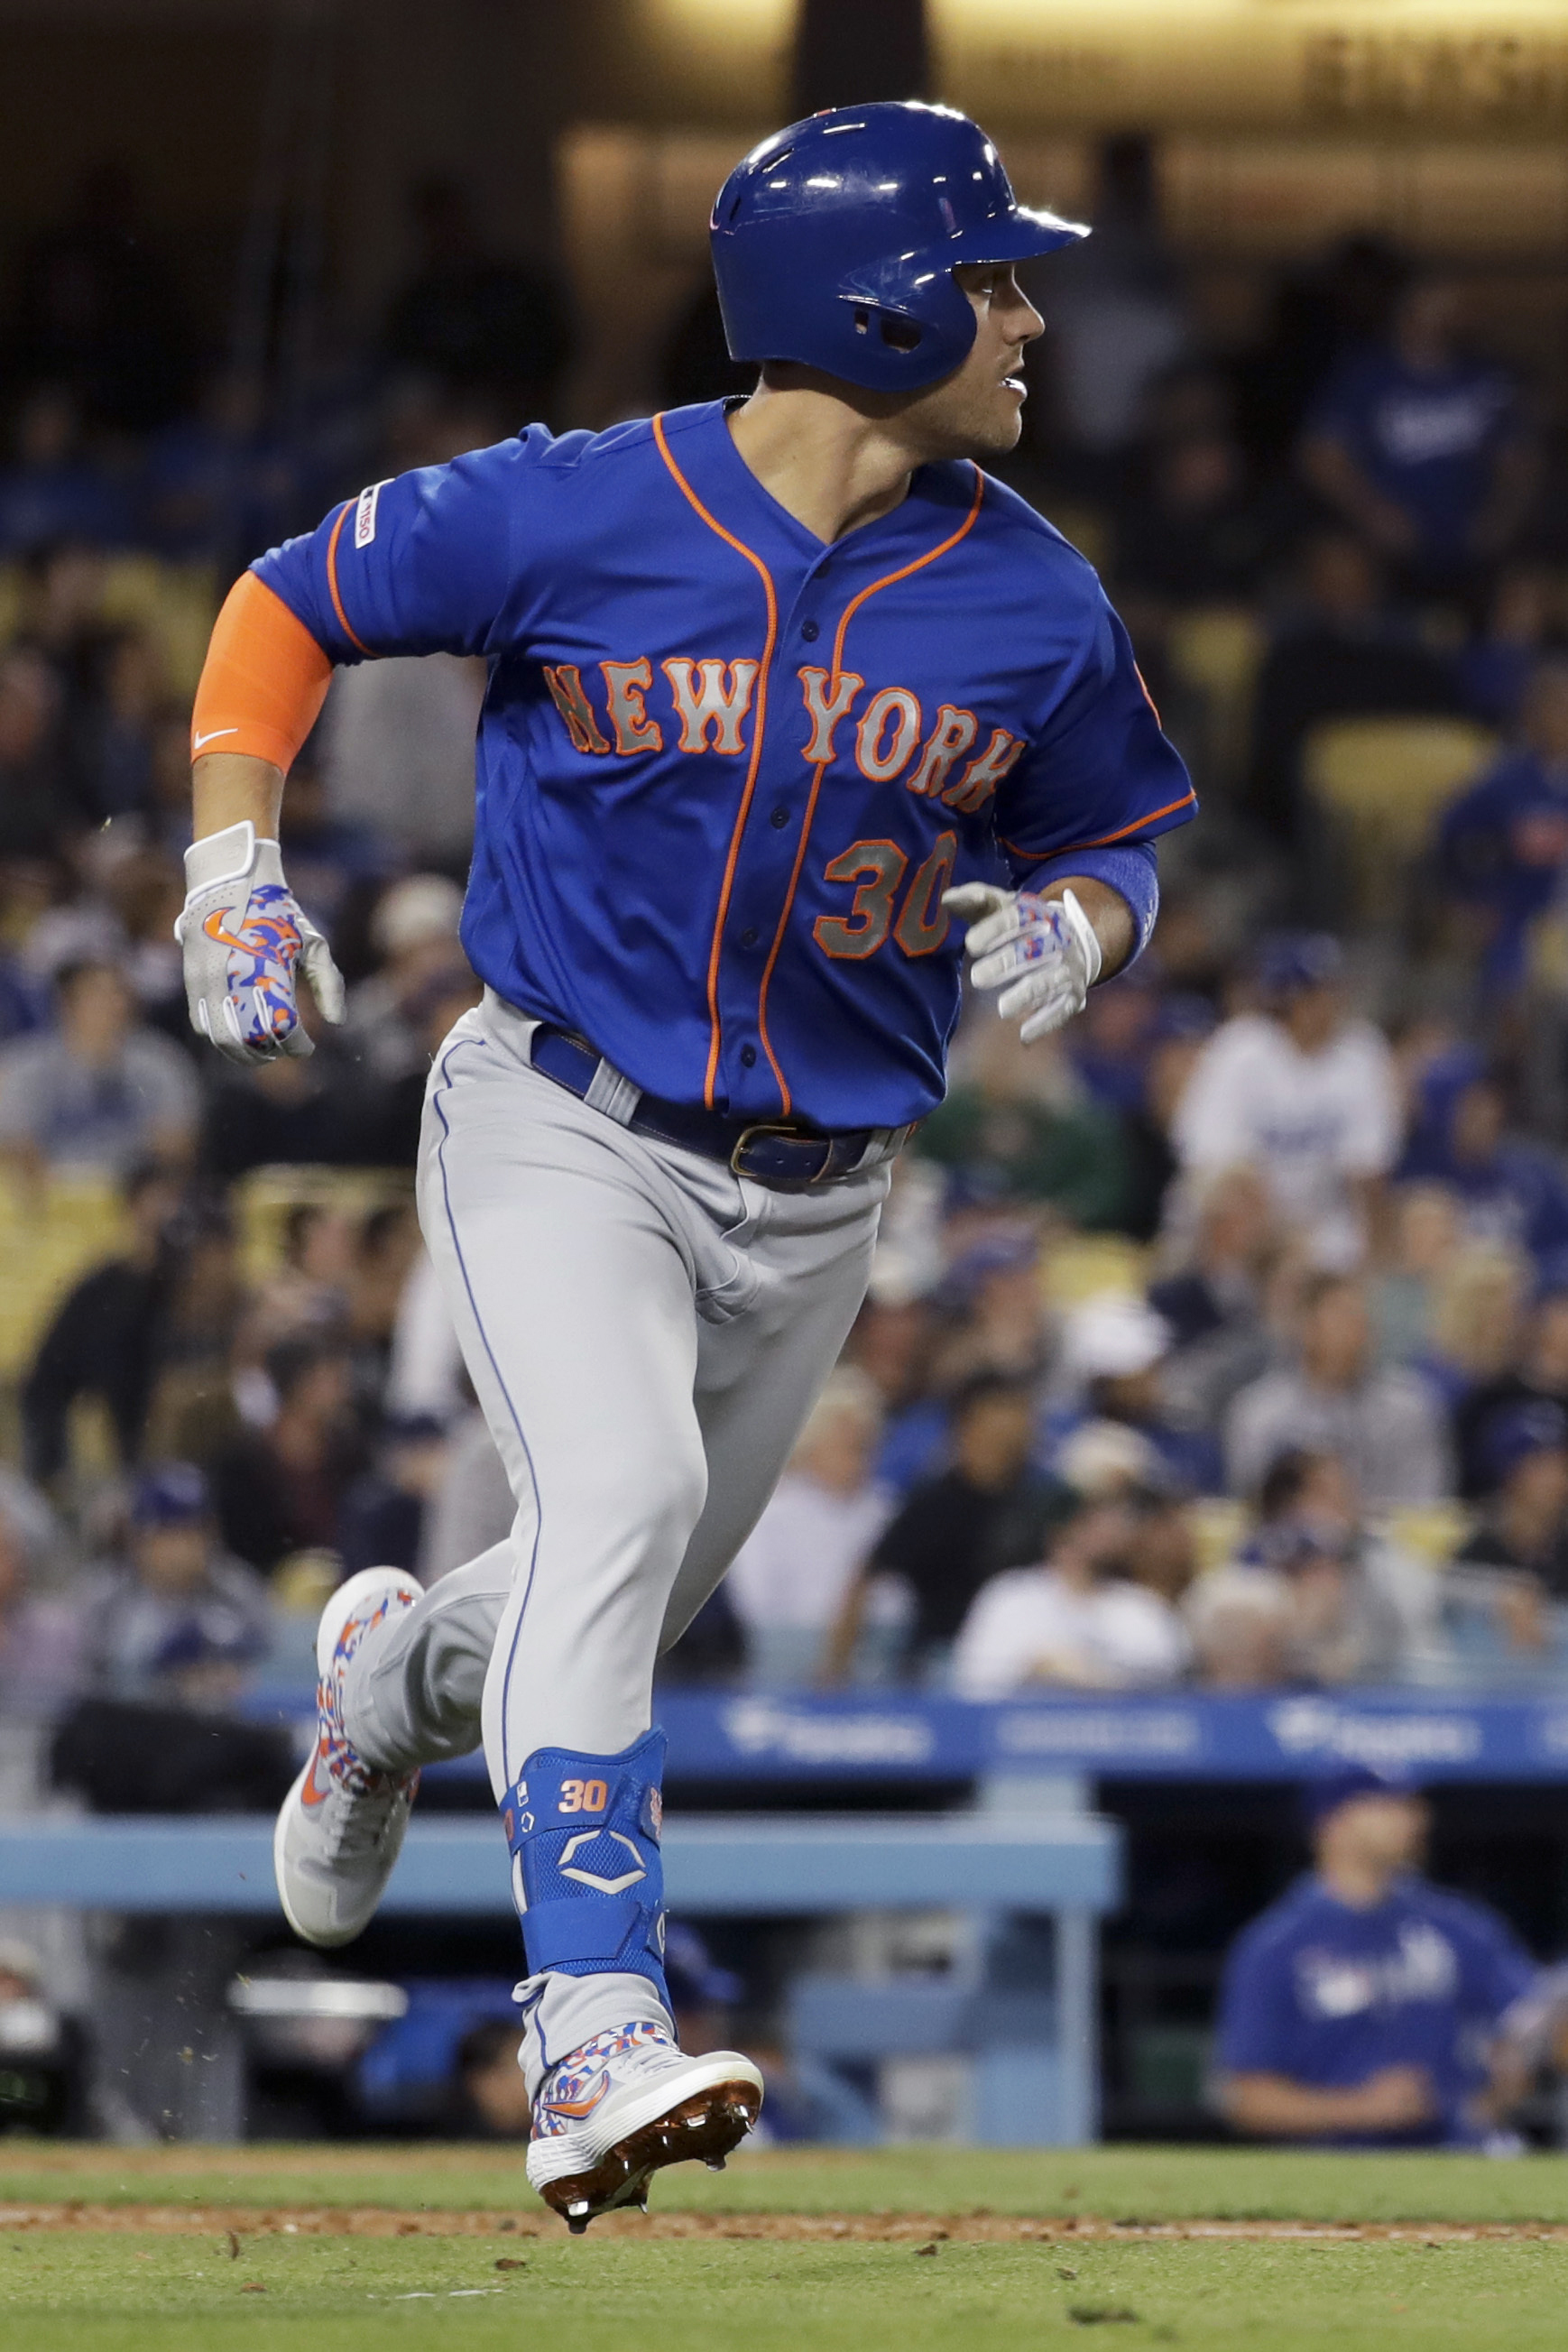 Conforto's grand slam sends Mets past Dodgers 7-3